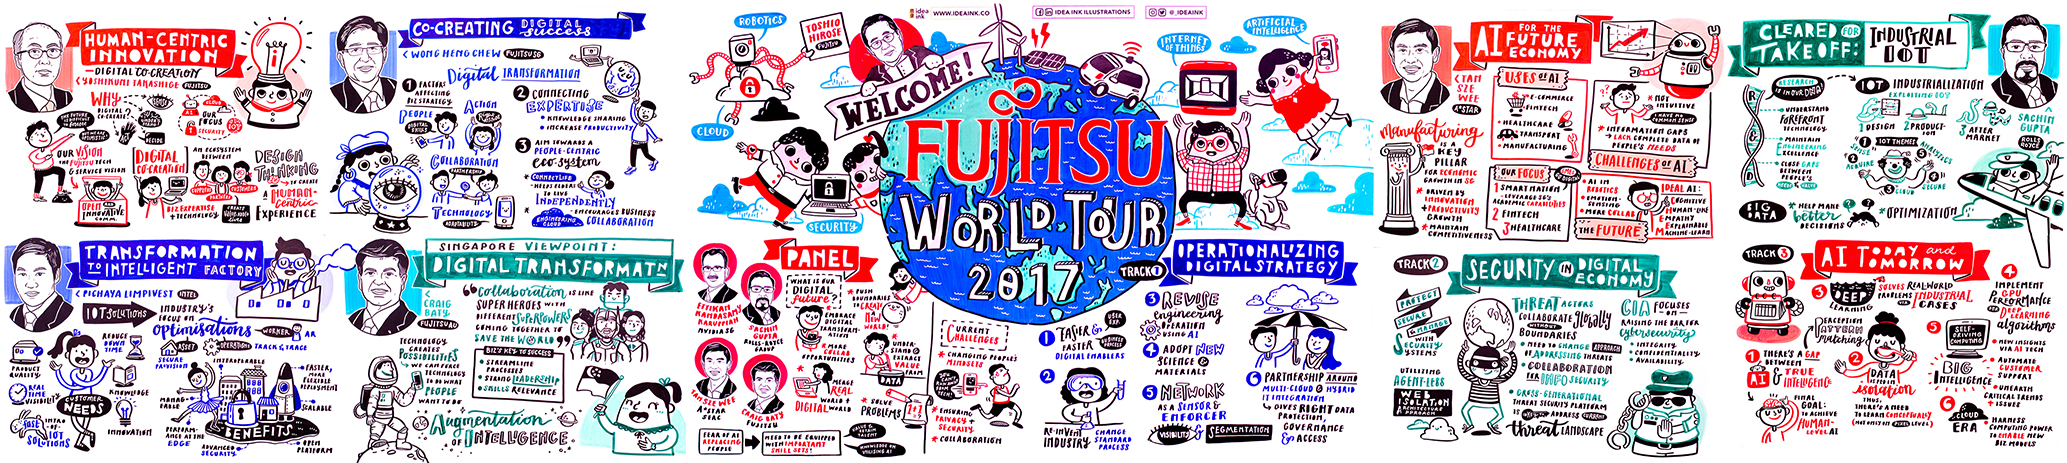 Fujitsu World Tour 2017 Full Image.jpg